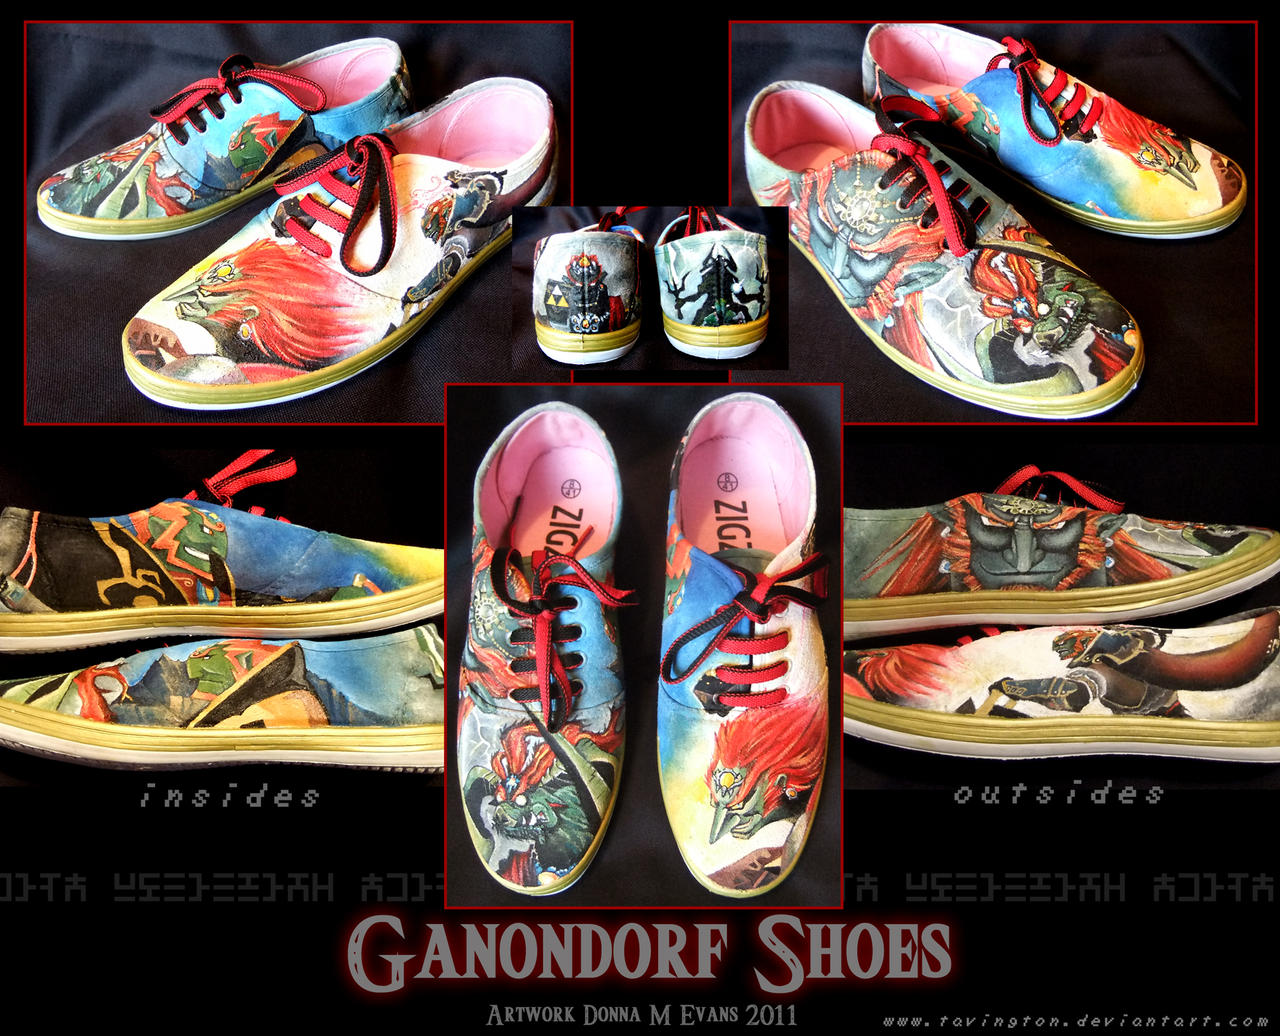 Ganondorf Custom Slick Kicks by tavington